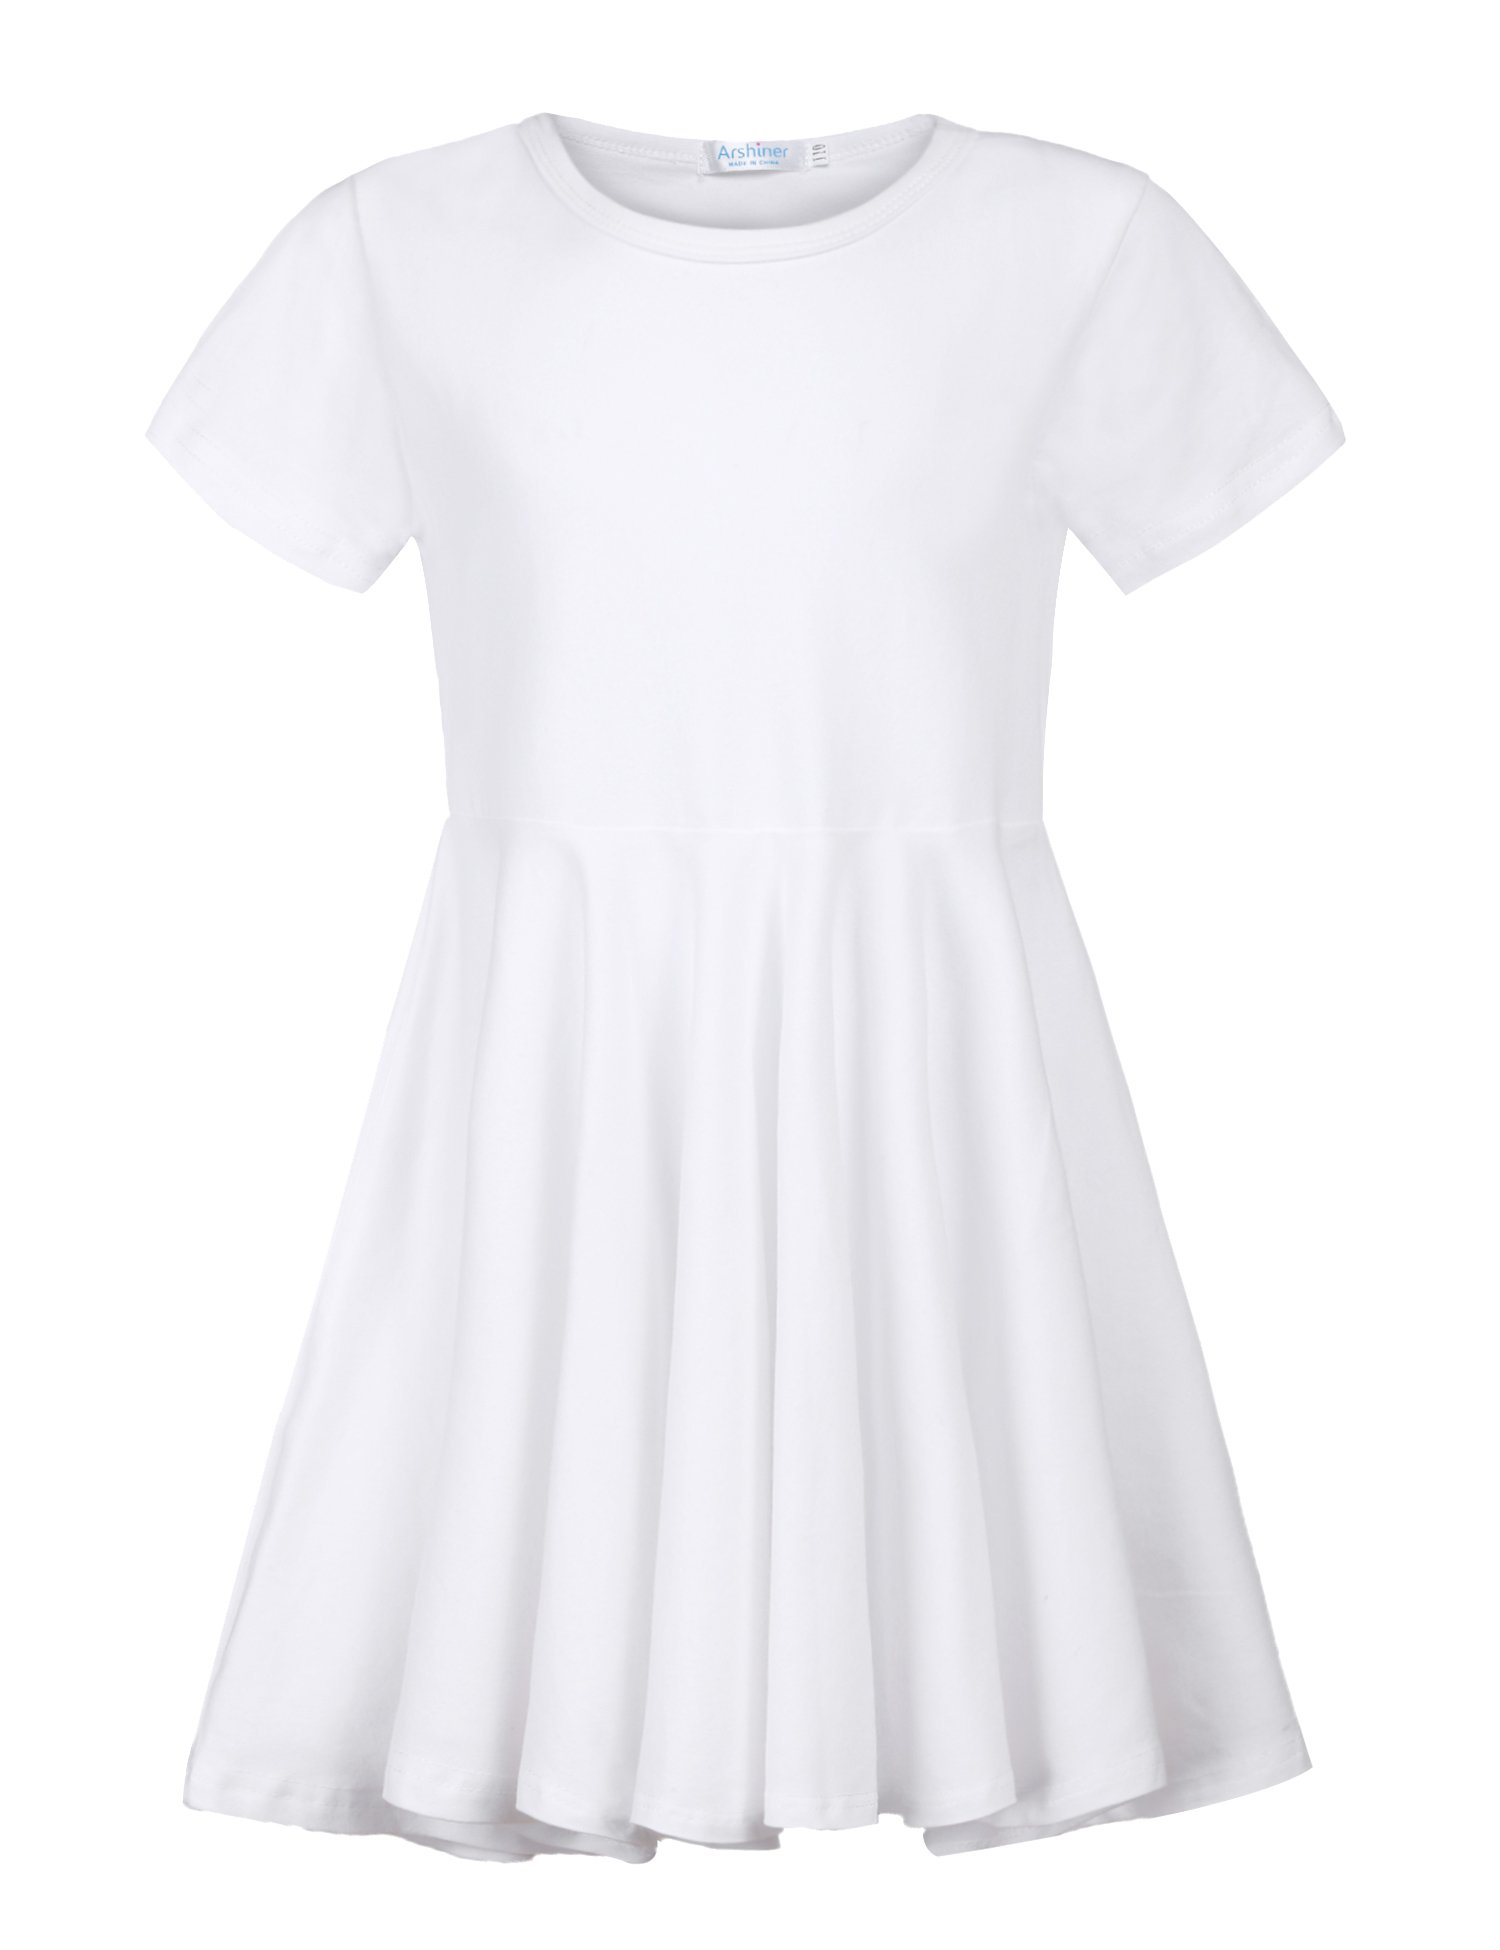 Arshiner Girls Short Sleeve Dress A Line Skater Swing Asymmetrical High Low Hem Casual Dress by Arshiner (Image #1)